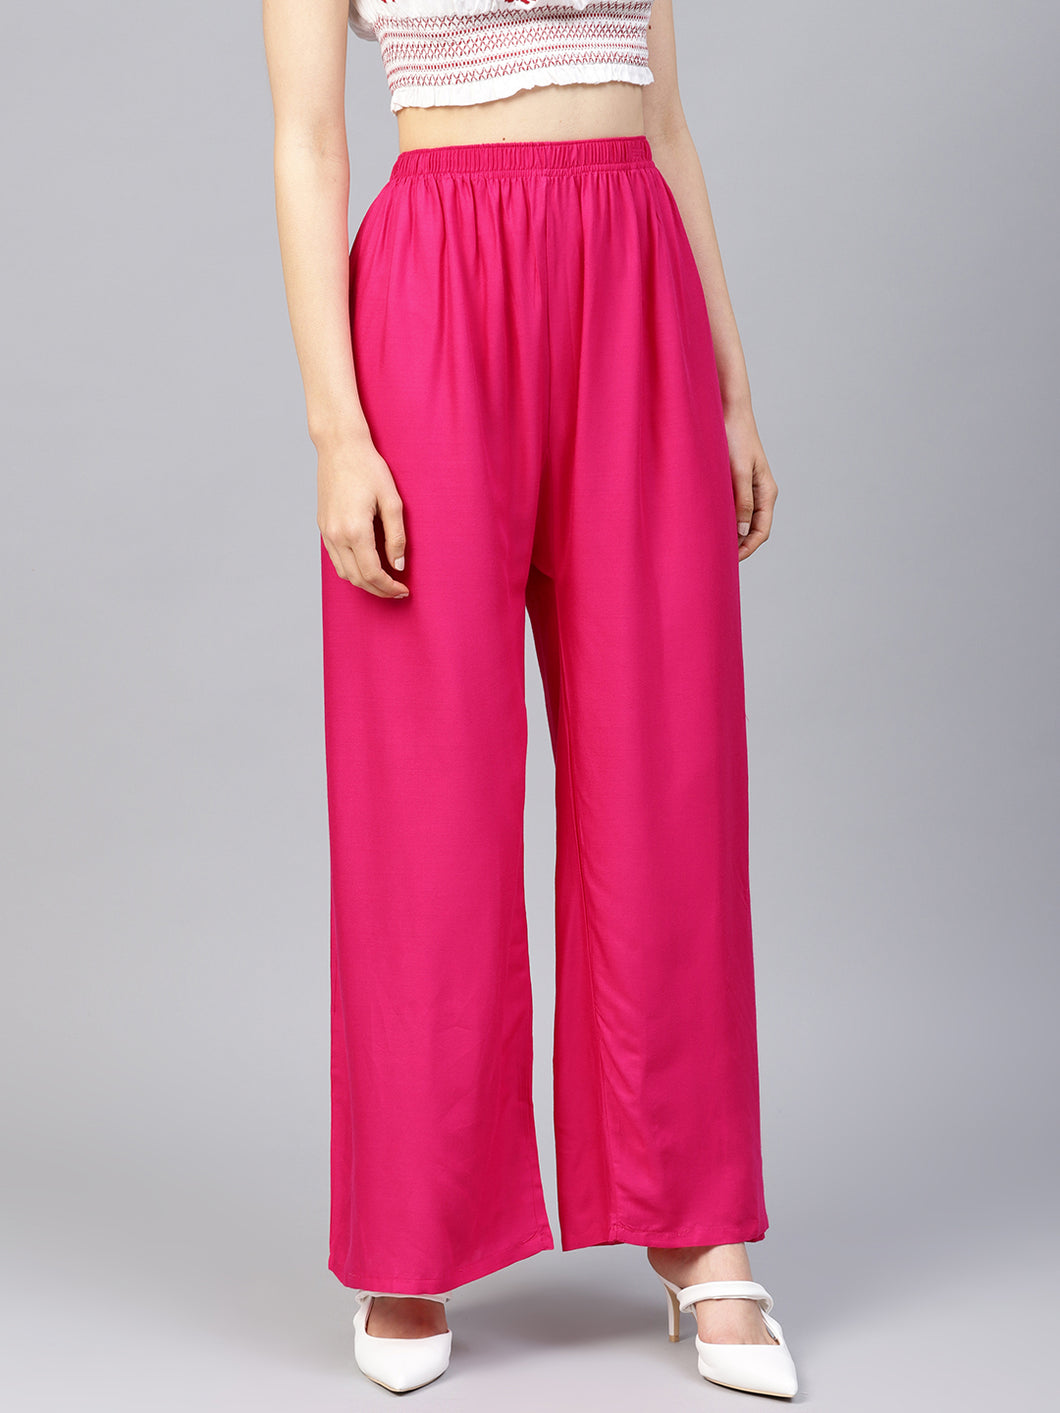 Jompers Women Pink Solid Straight Palazzos